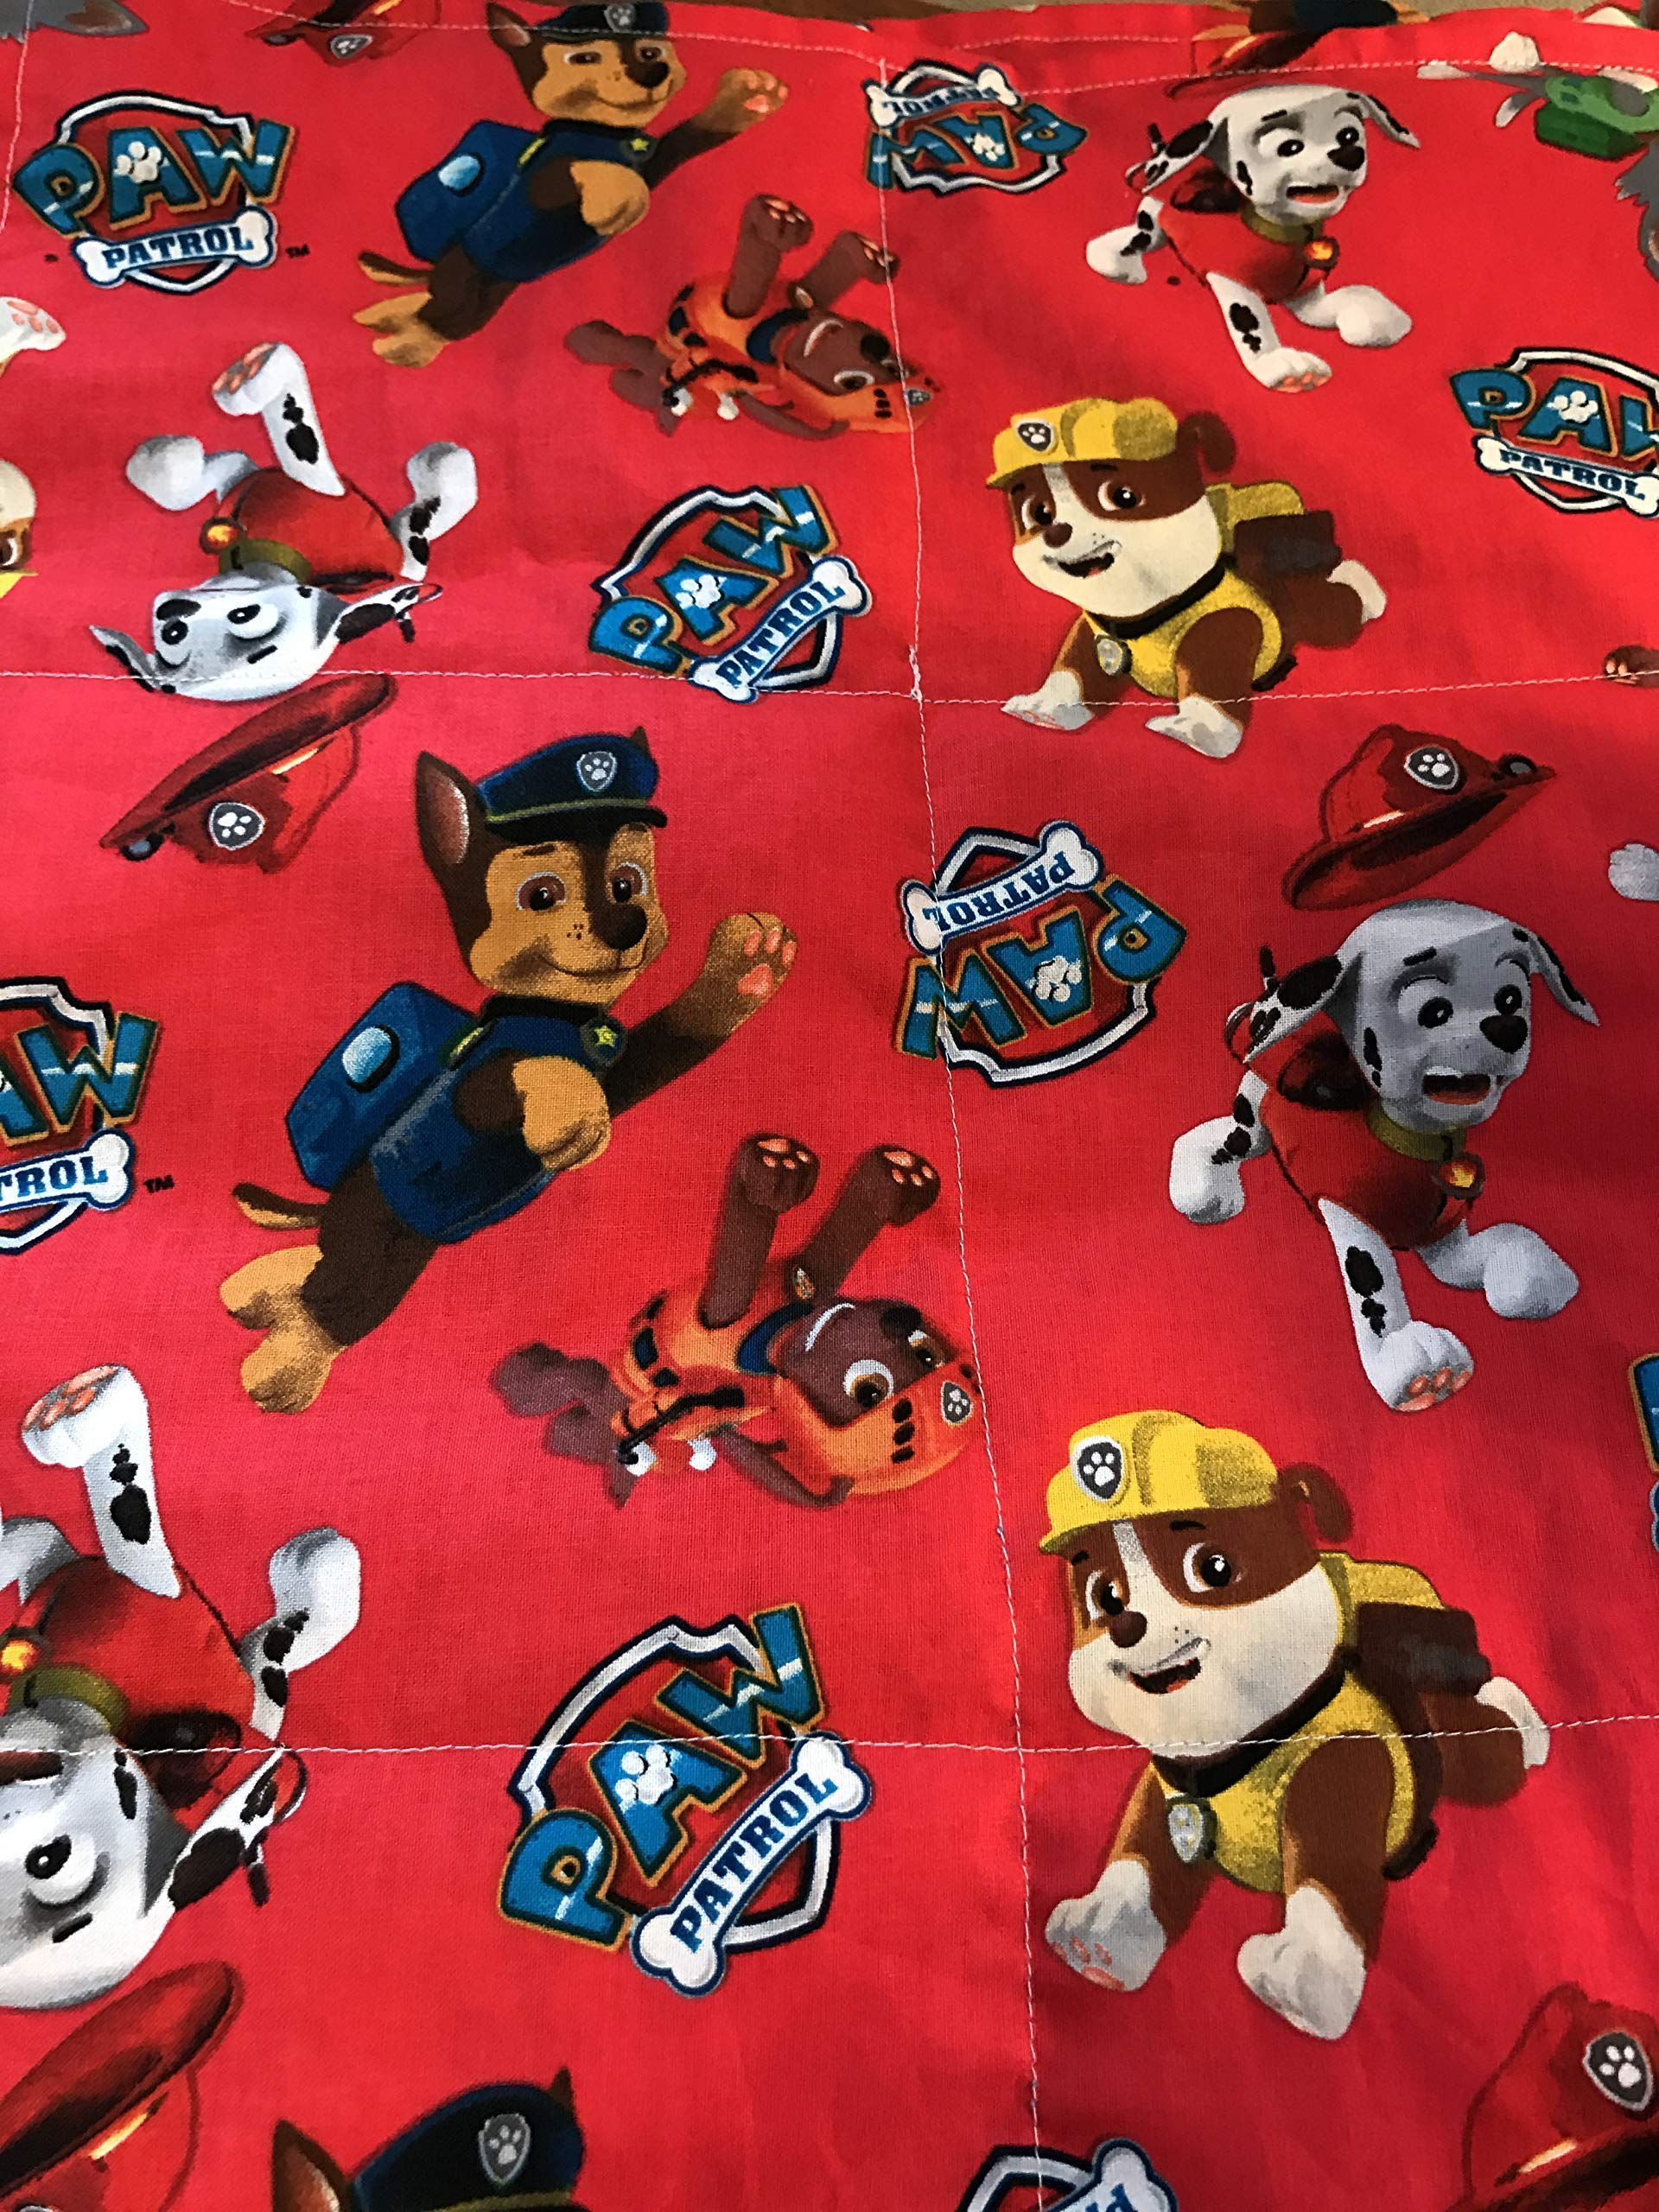 Weighted blanket toddler size, paw patrol, ready to ship,3 or 3 1/2 lbs, washable